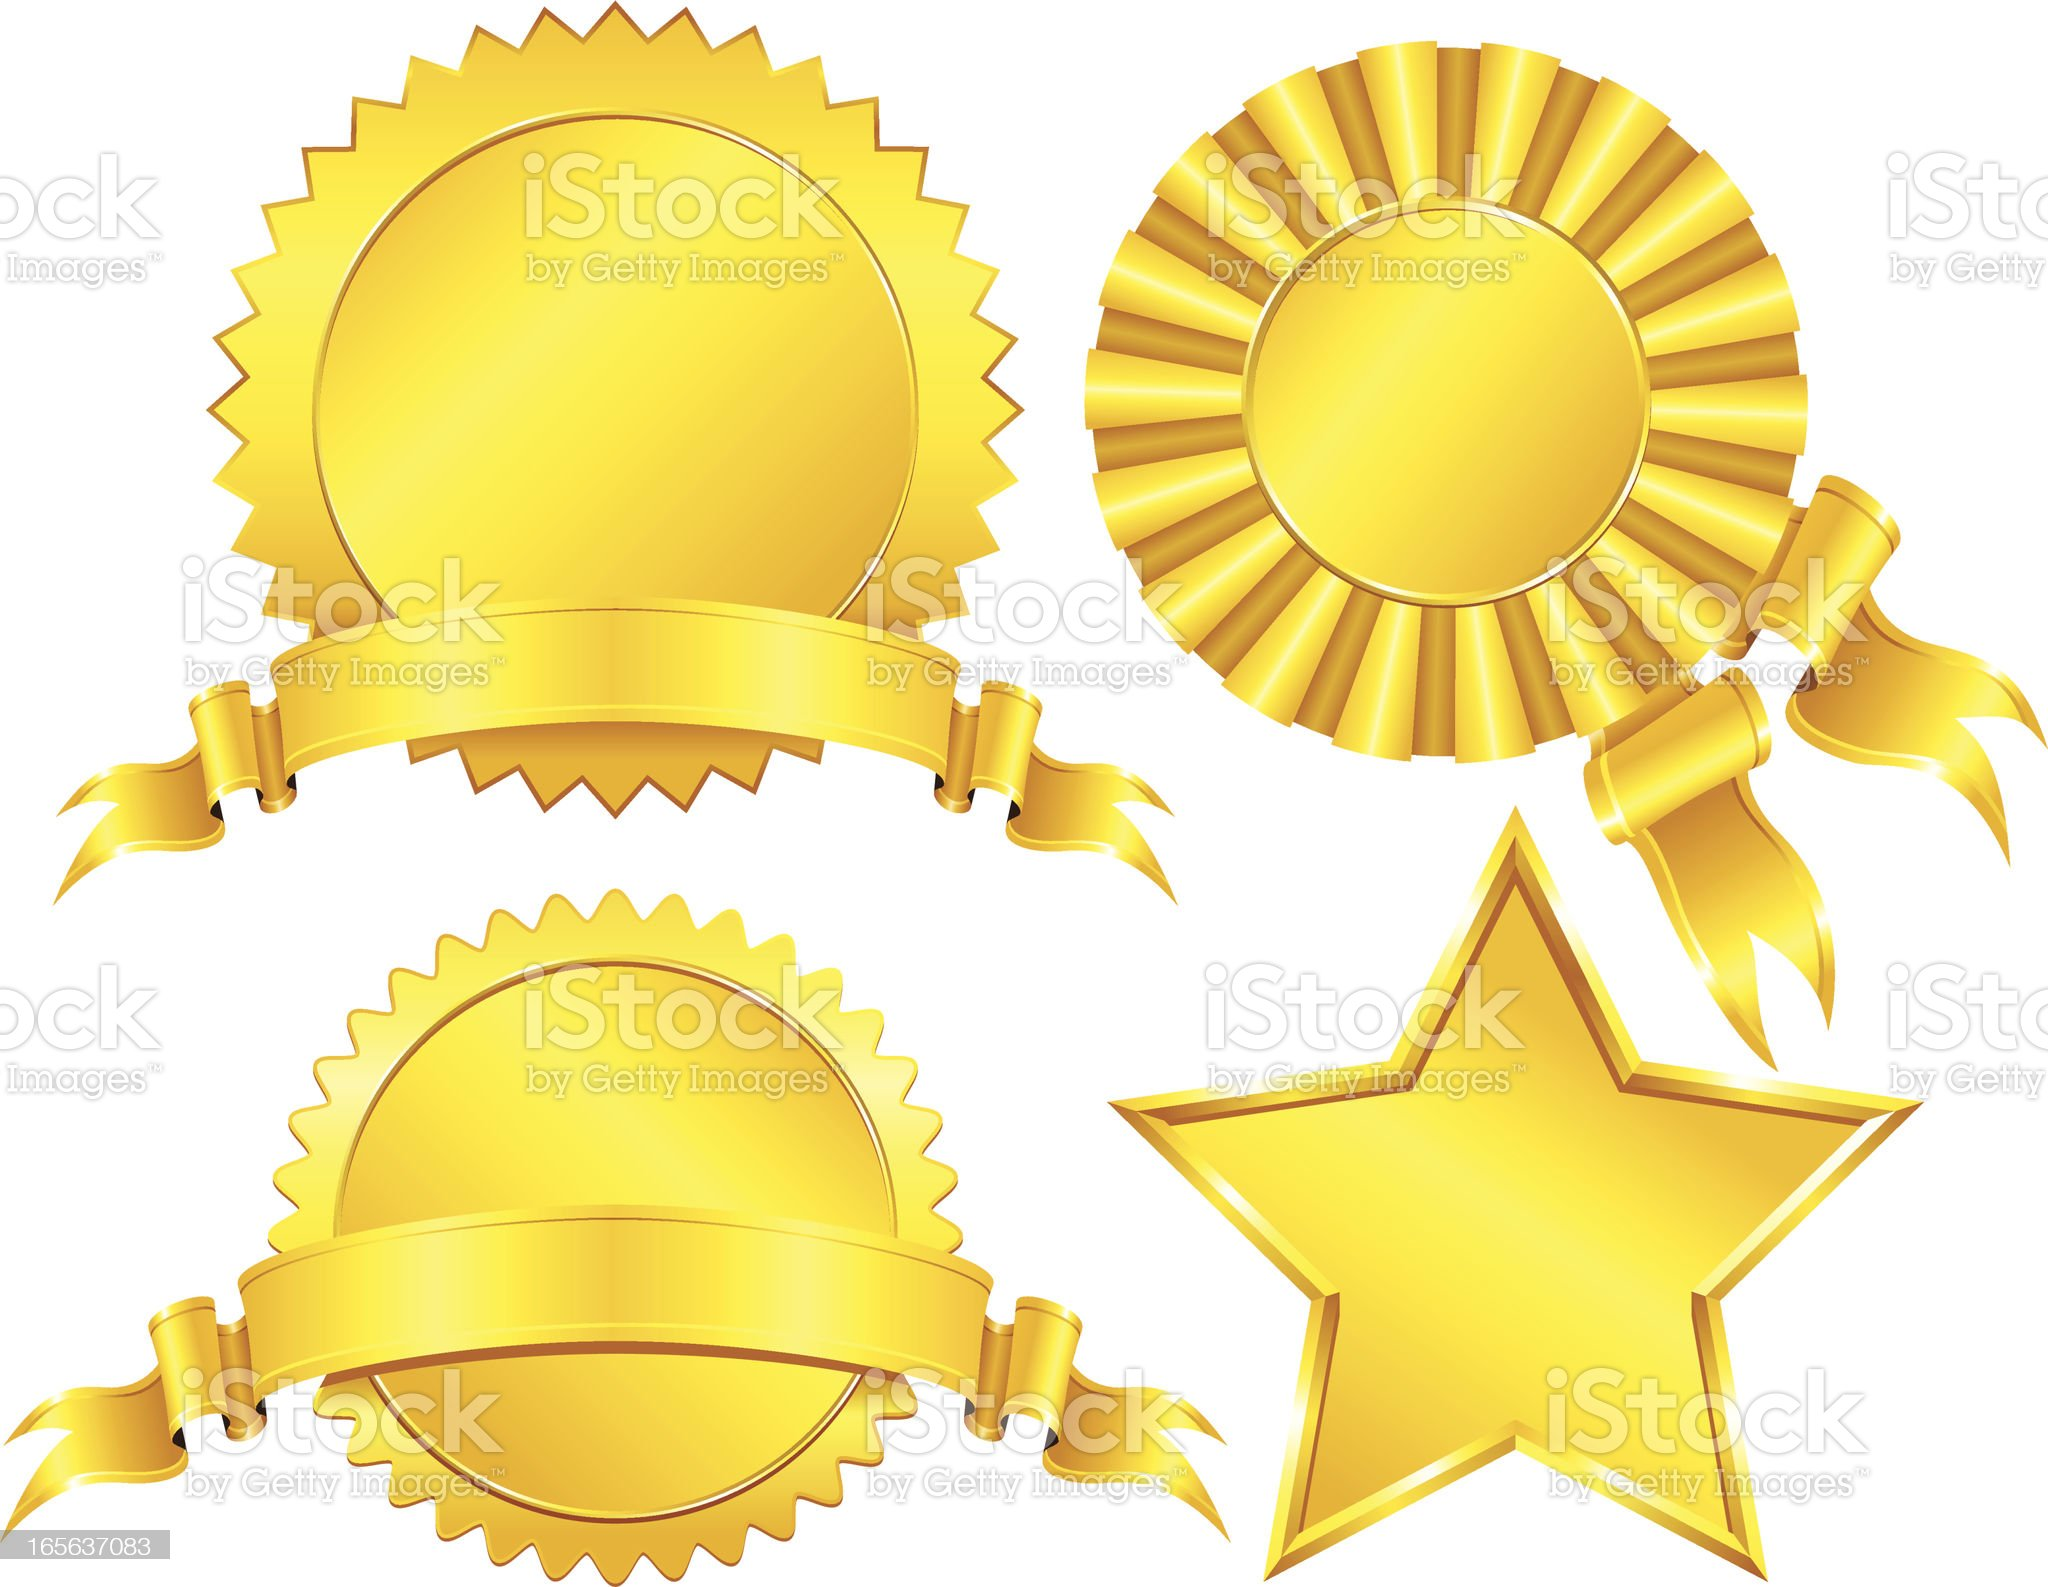 Gold Medals royalty-free stock vector art